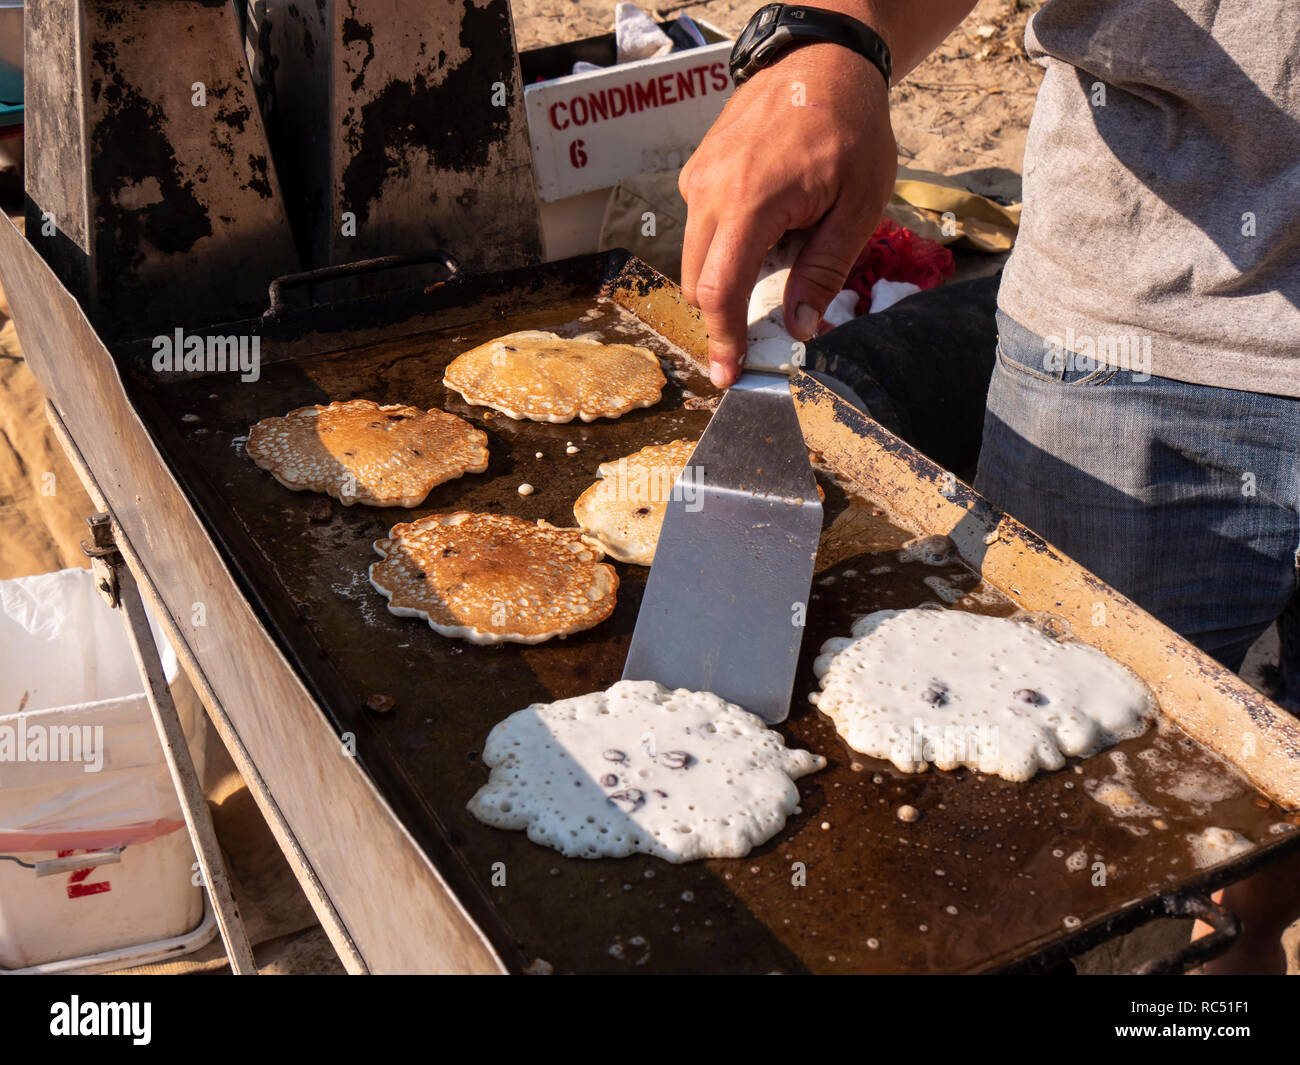 Pancakes on the griddle, Range Creek campsite, Gray Canyon north of Green River, Utah. - Stock Image